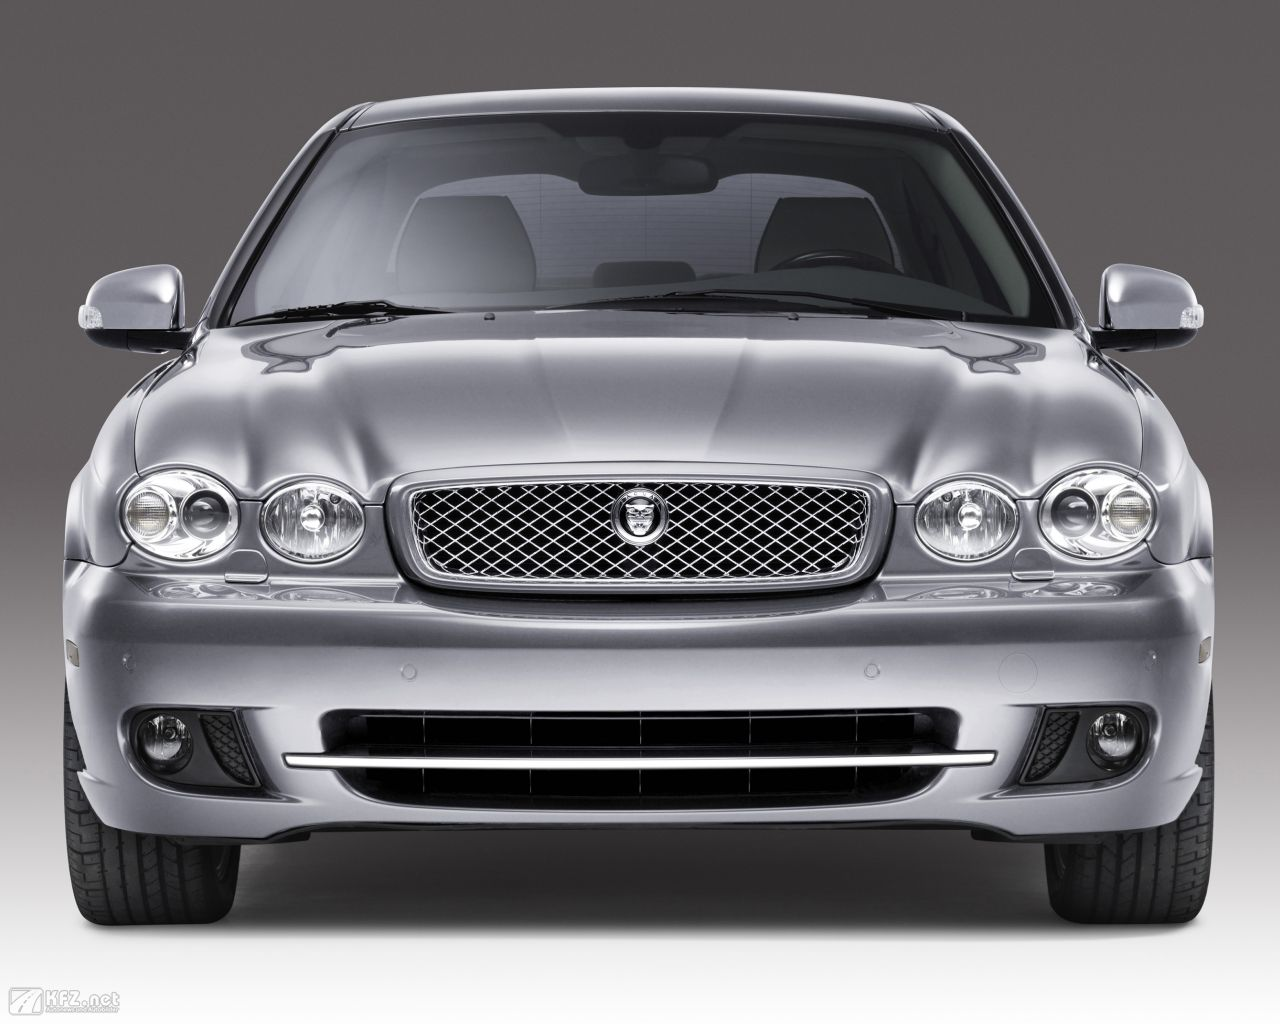 jaguar-x-type-1280x1024-41